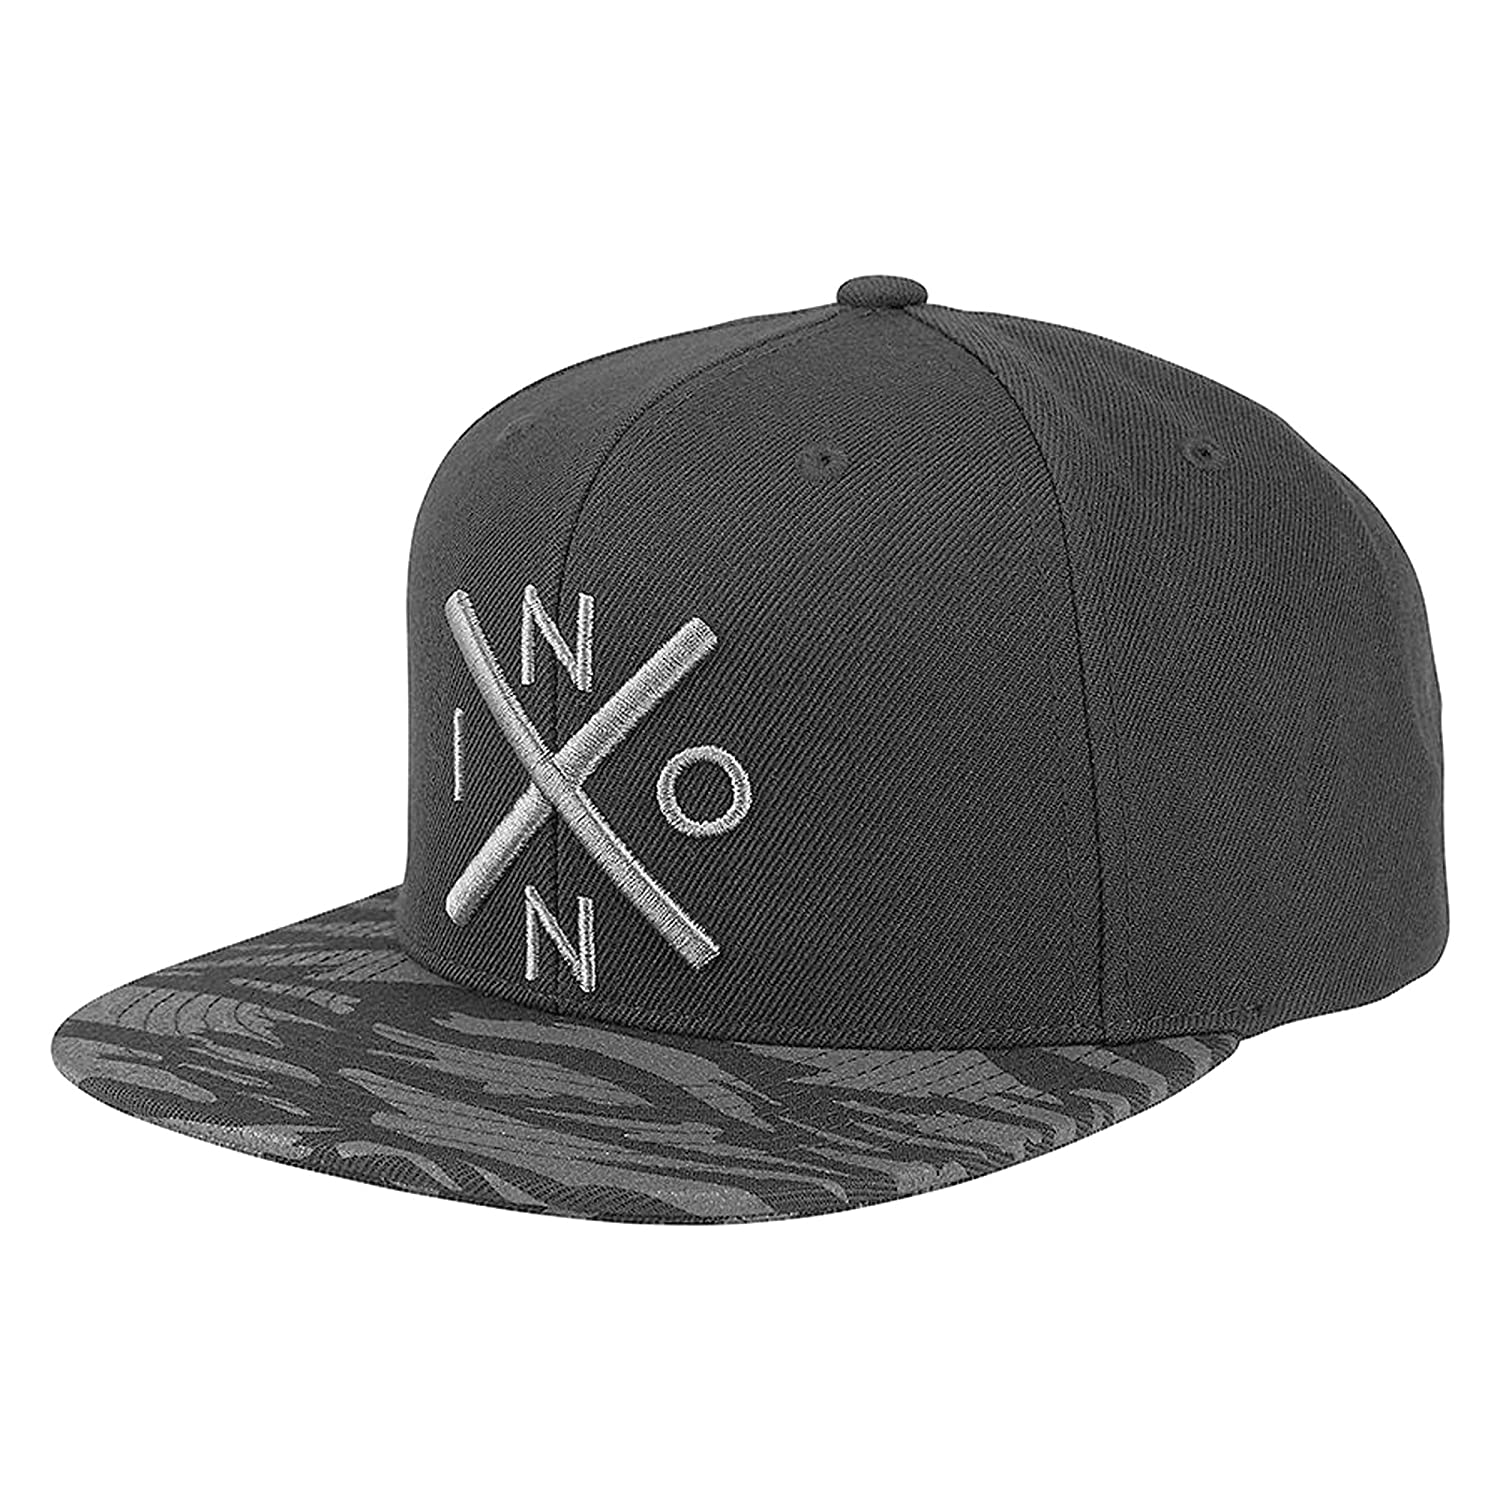 NIXON Mens Exchange Snap Back Hat C20661147-00